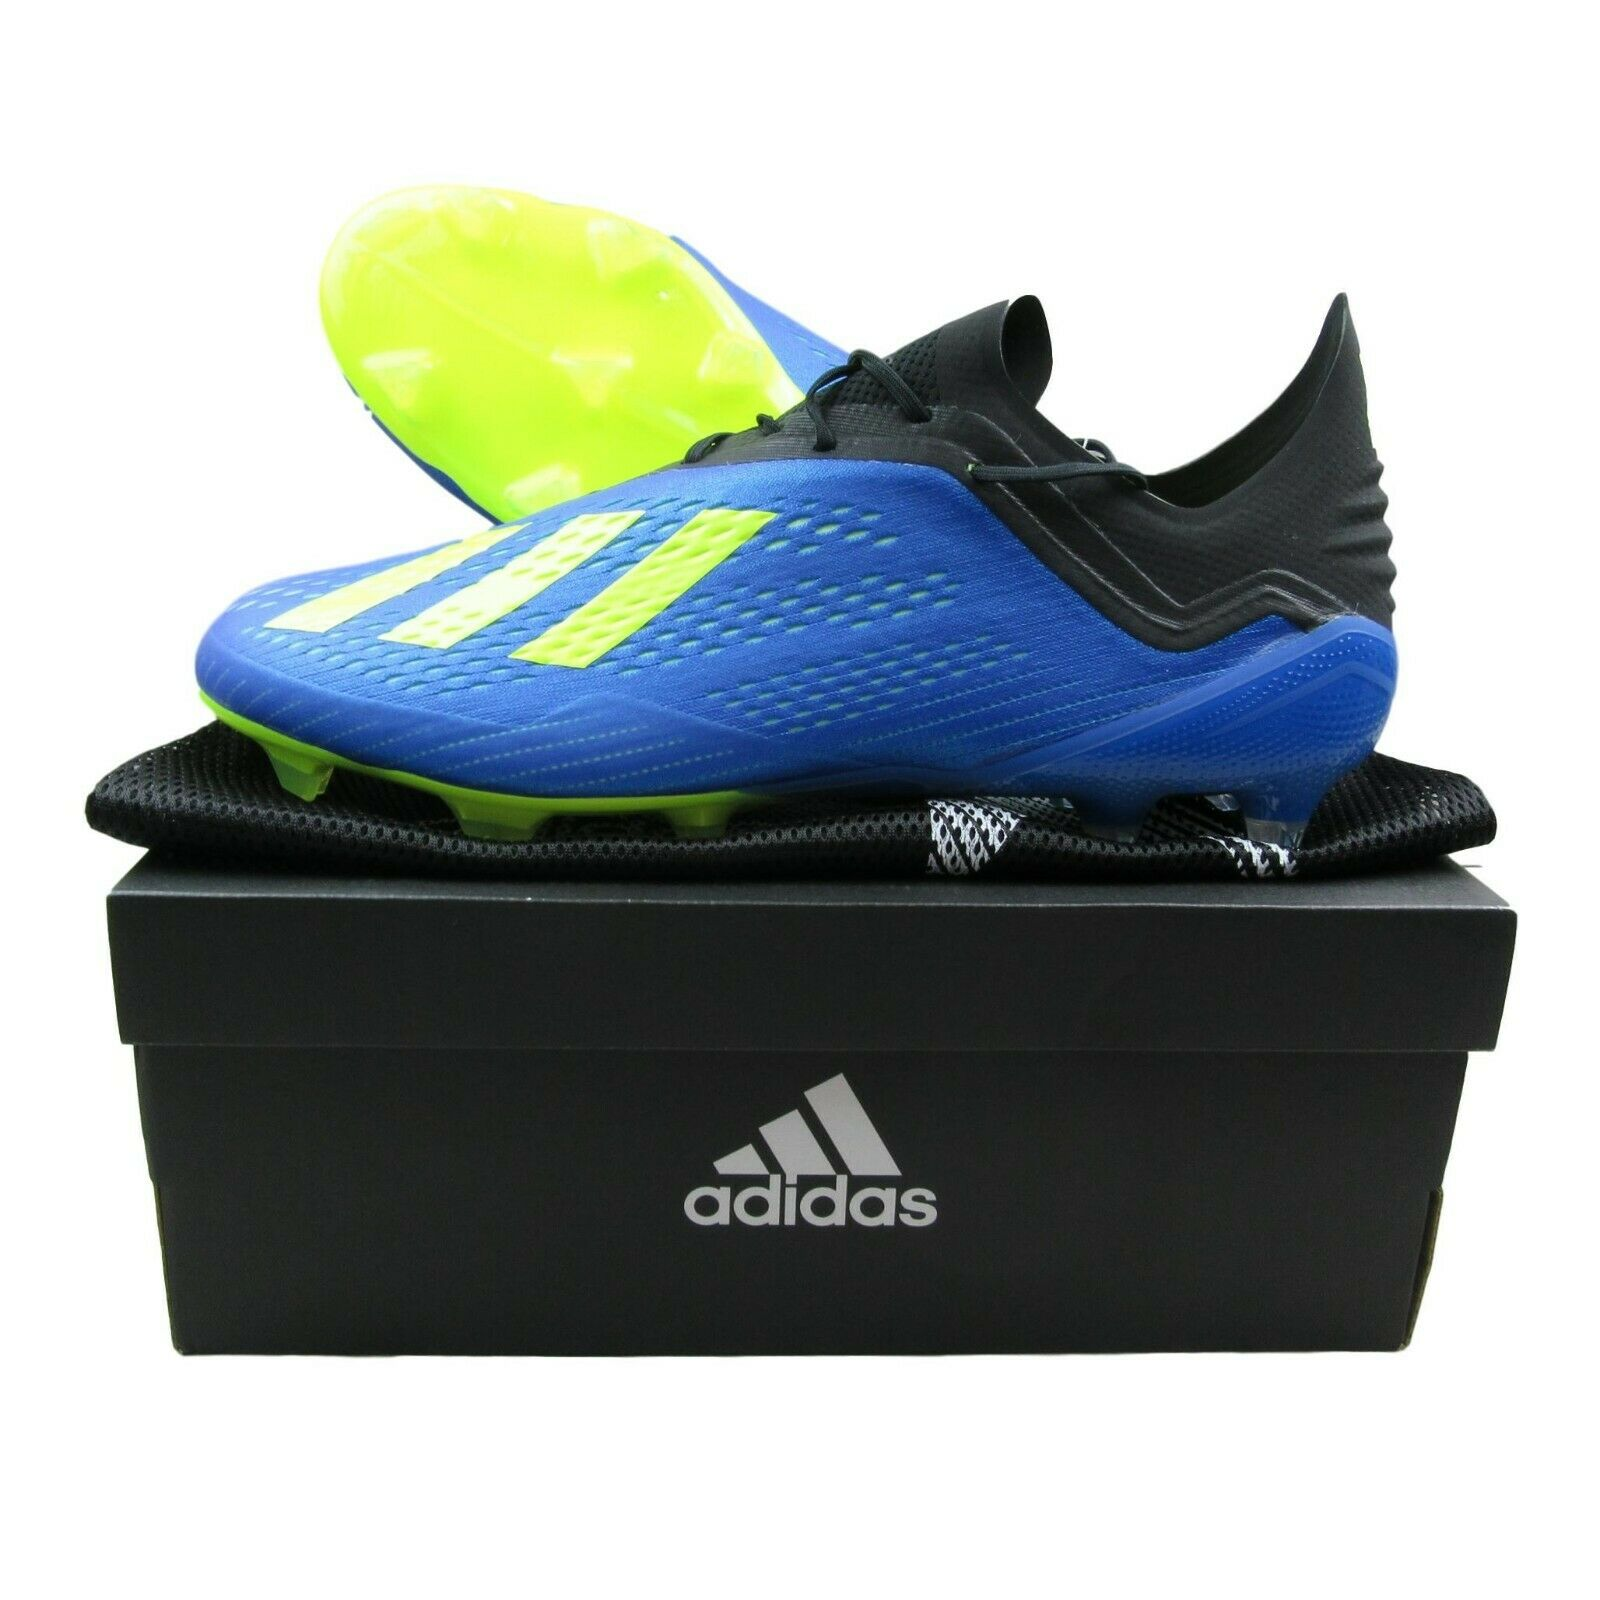 3e291708877 Adidas X 18.1 FG Soccer Cleats Blue Solar Yellow Size 10.5 Mens LMTD ...